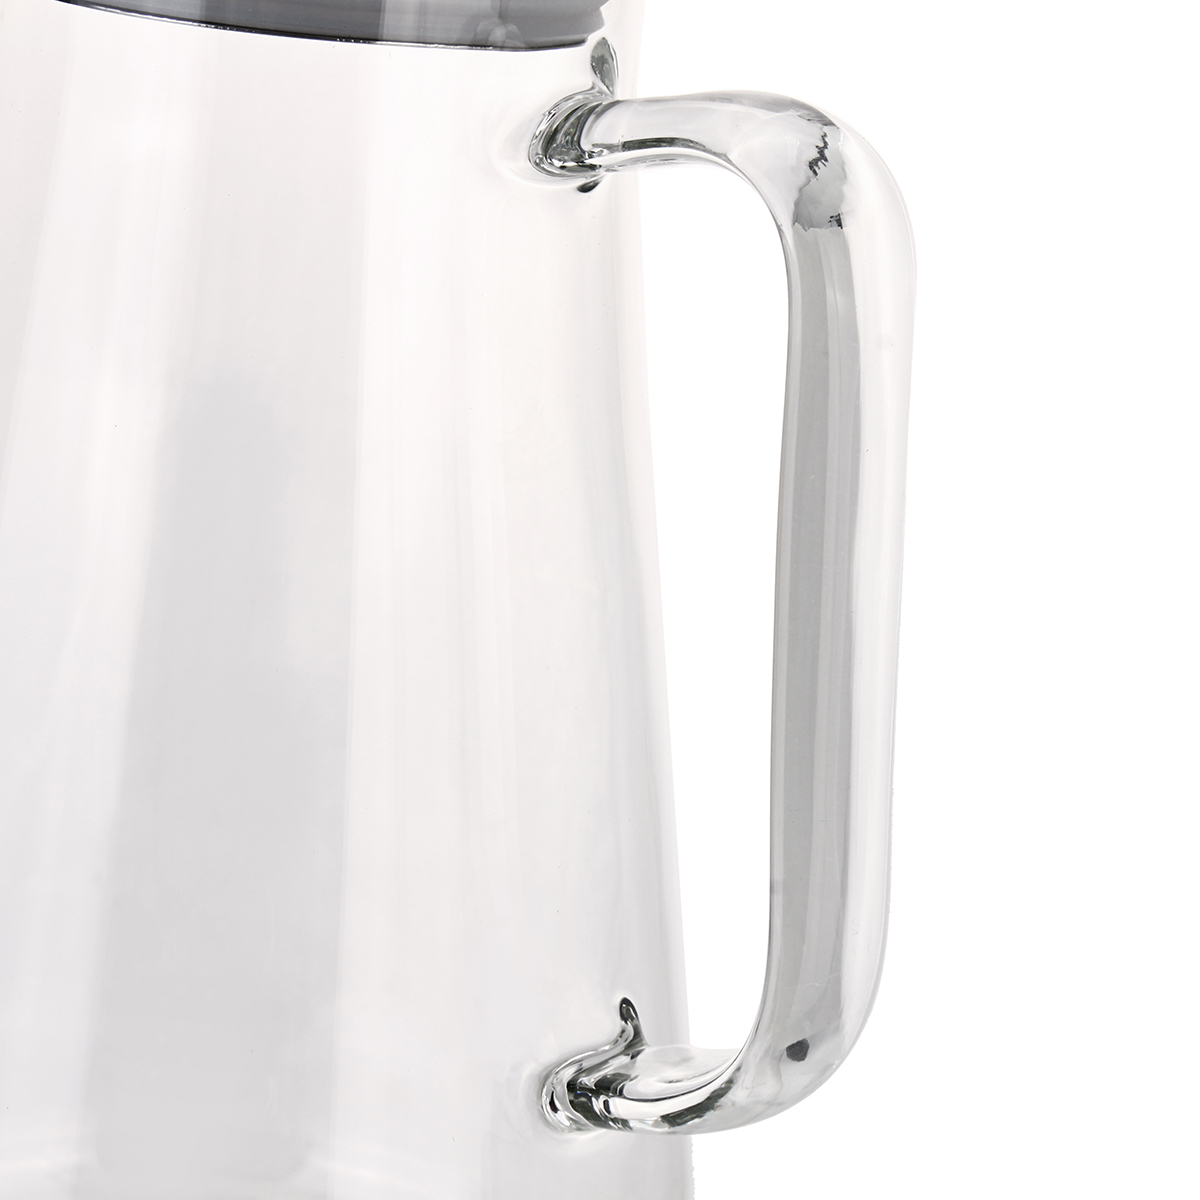 1.5L Clear Glass Pitcher Jug Water Drinking Tea Pot Carafe Stainless Steel Lid